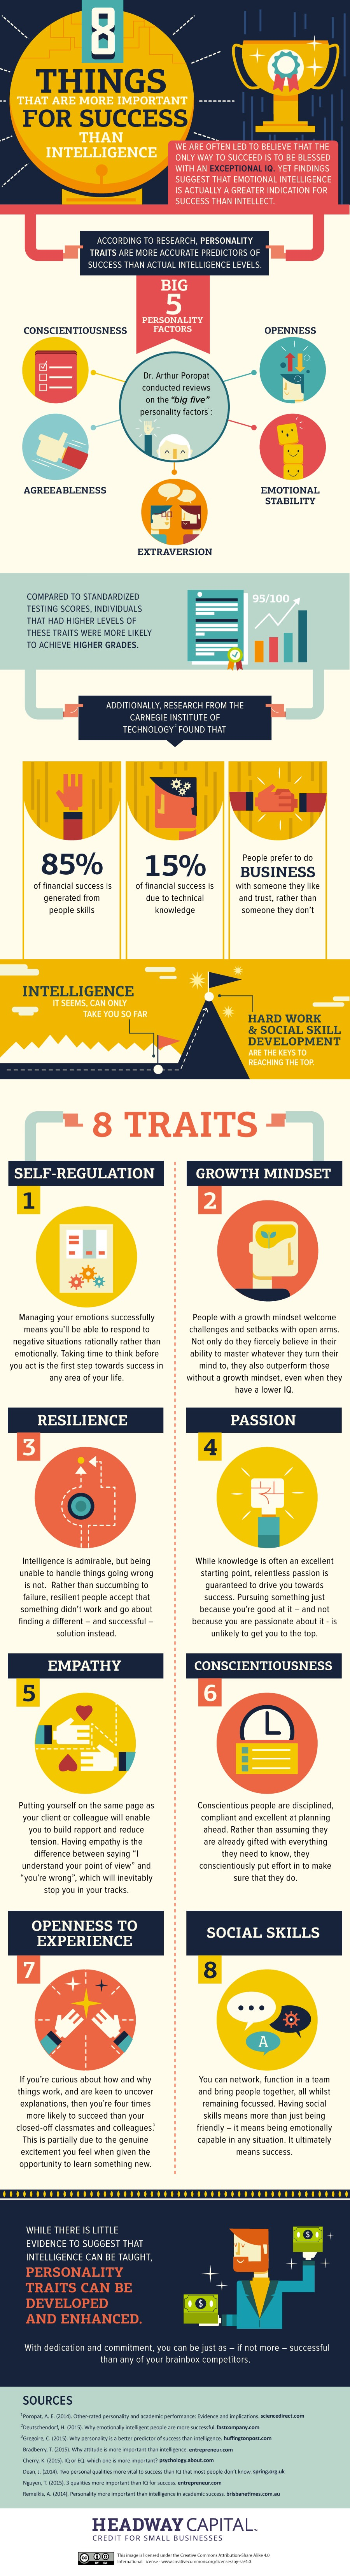 What You Need to Know About Success: Why Emotional Intelligence is Very Important